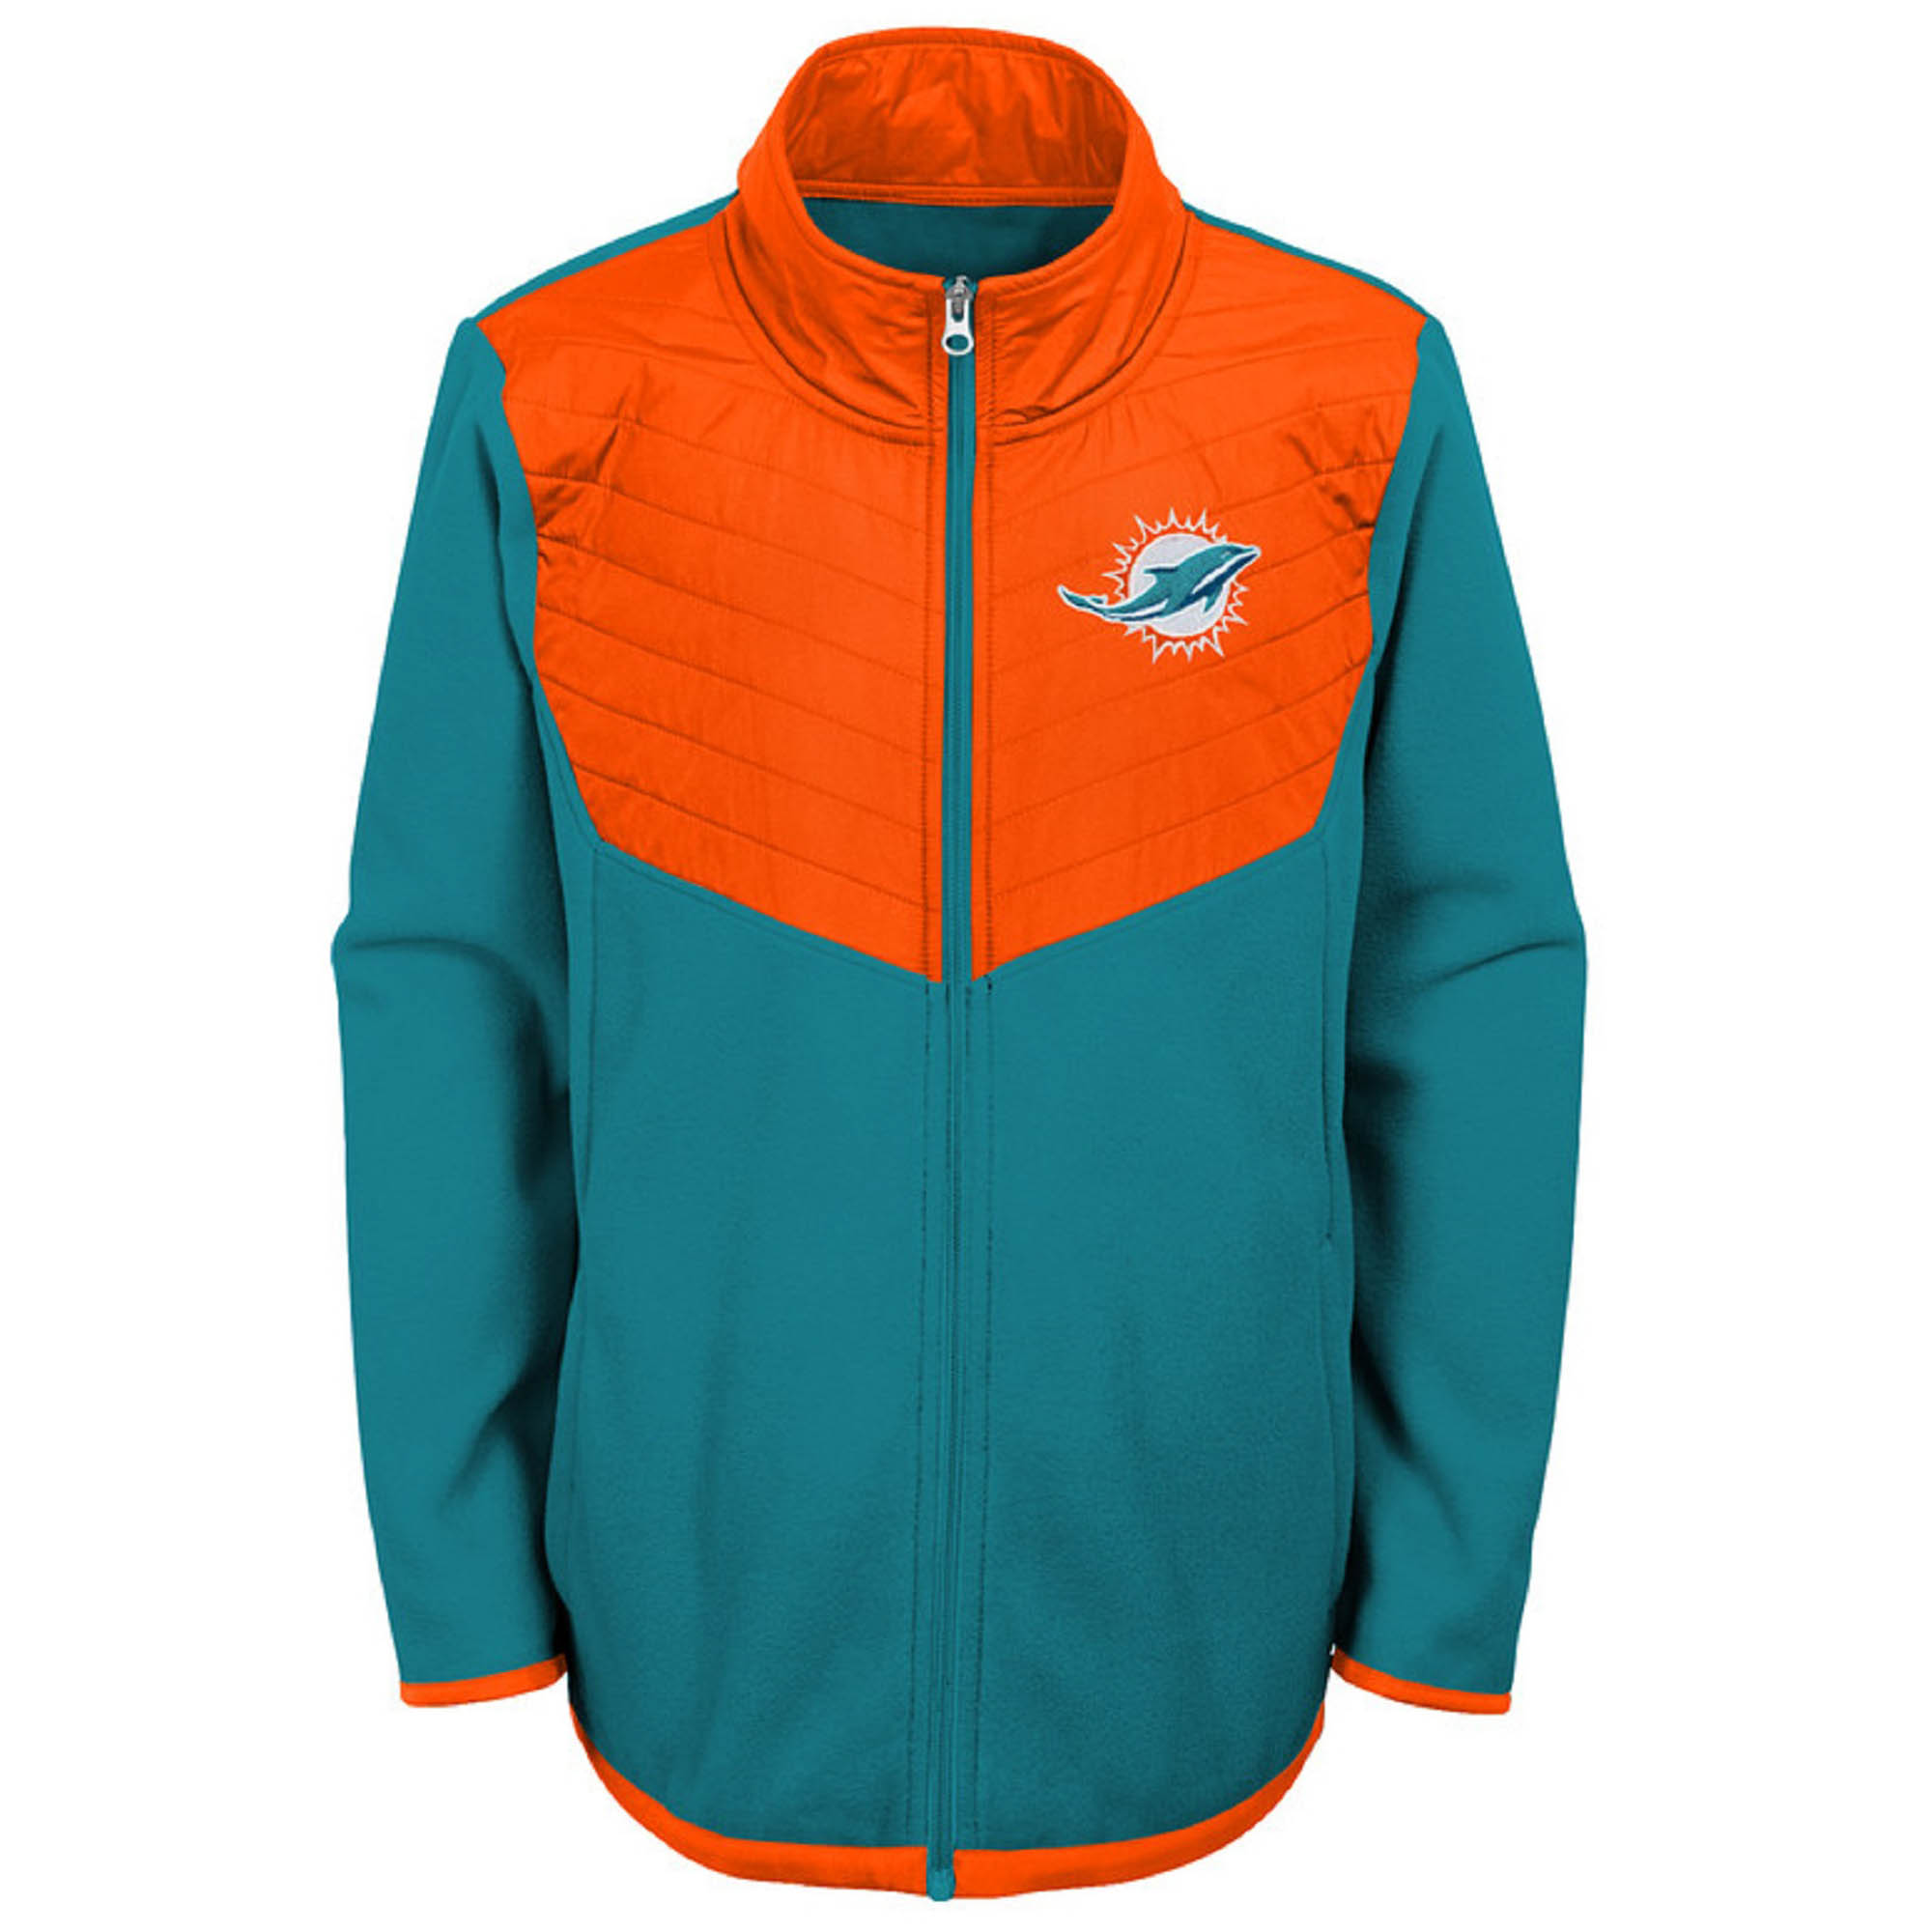 Hot Youth AquaOrange Miami Dolphins Polar Full Zip Jacket  for cheap